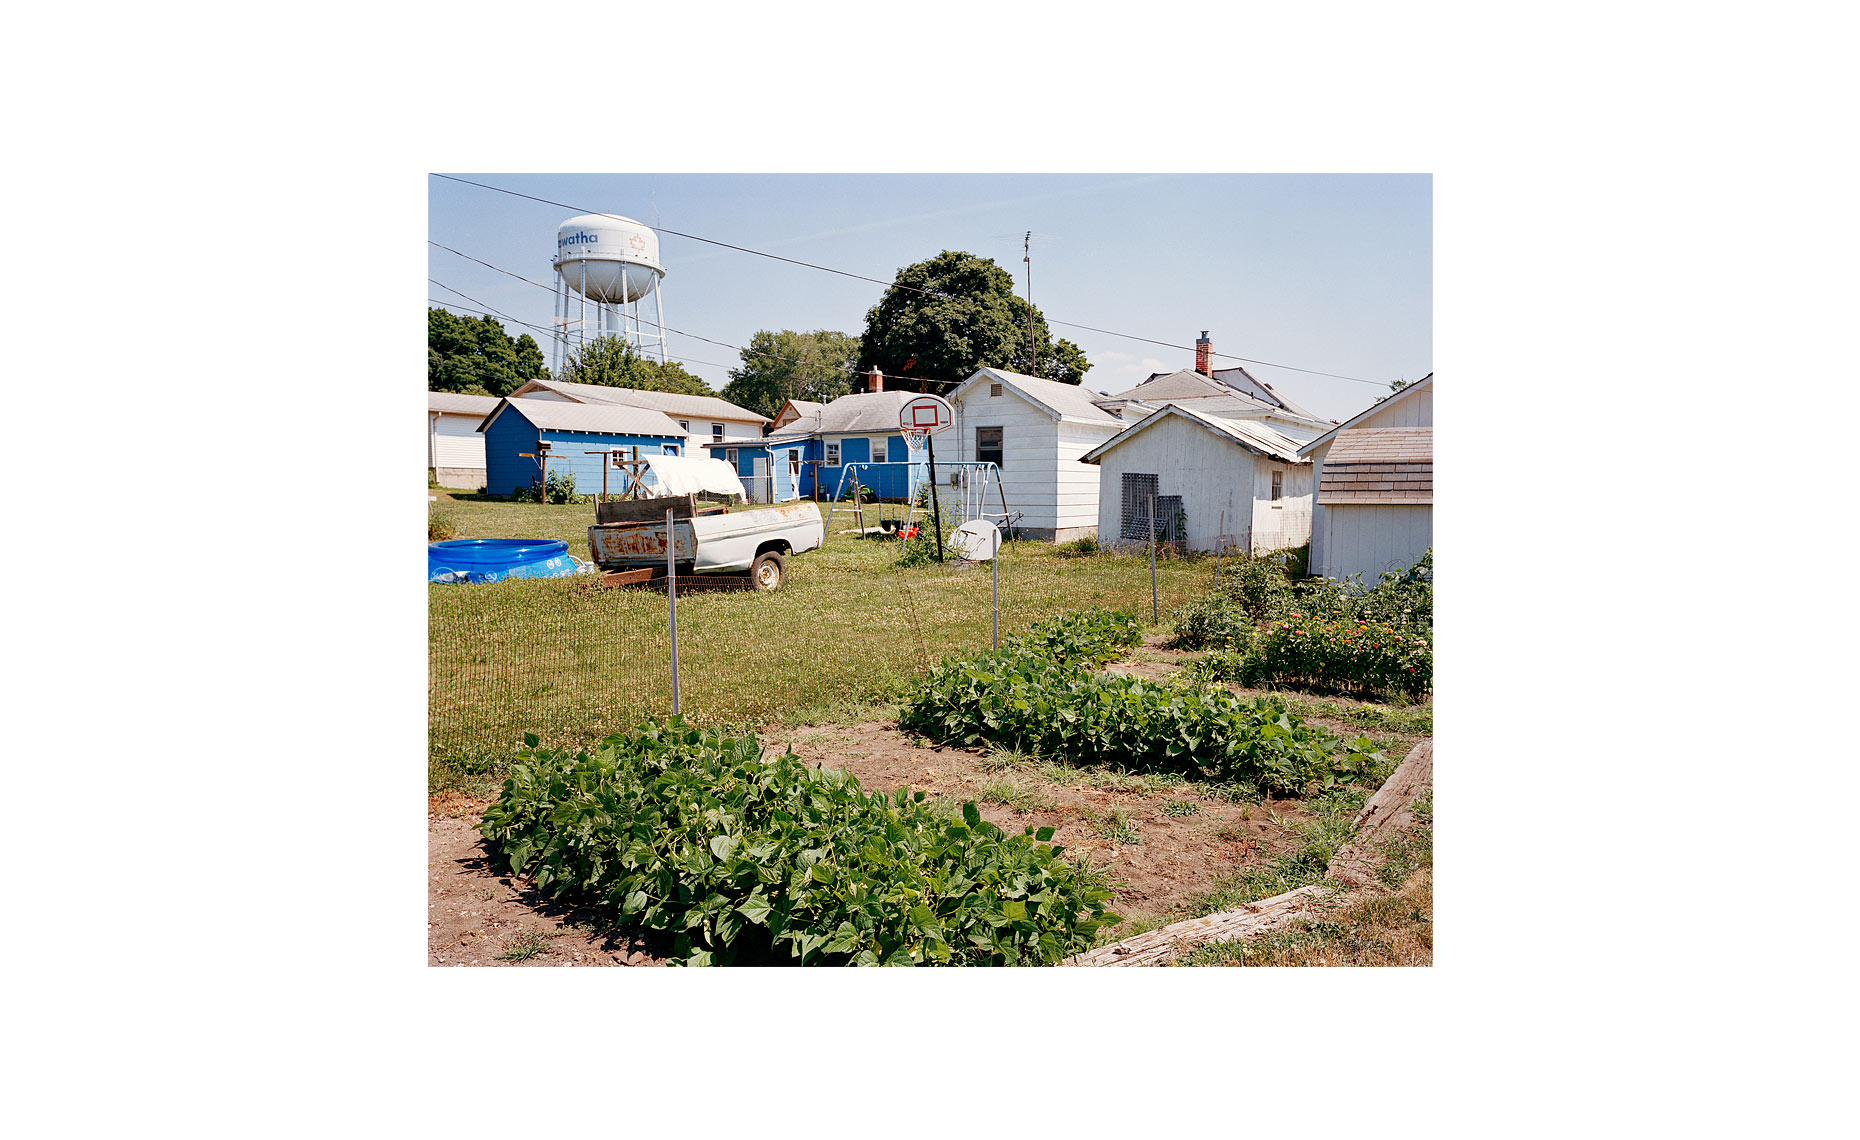 This Was What There Was | Backyards. Hiawatha, Kansas. July 2005